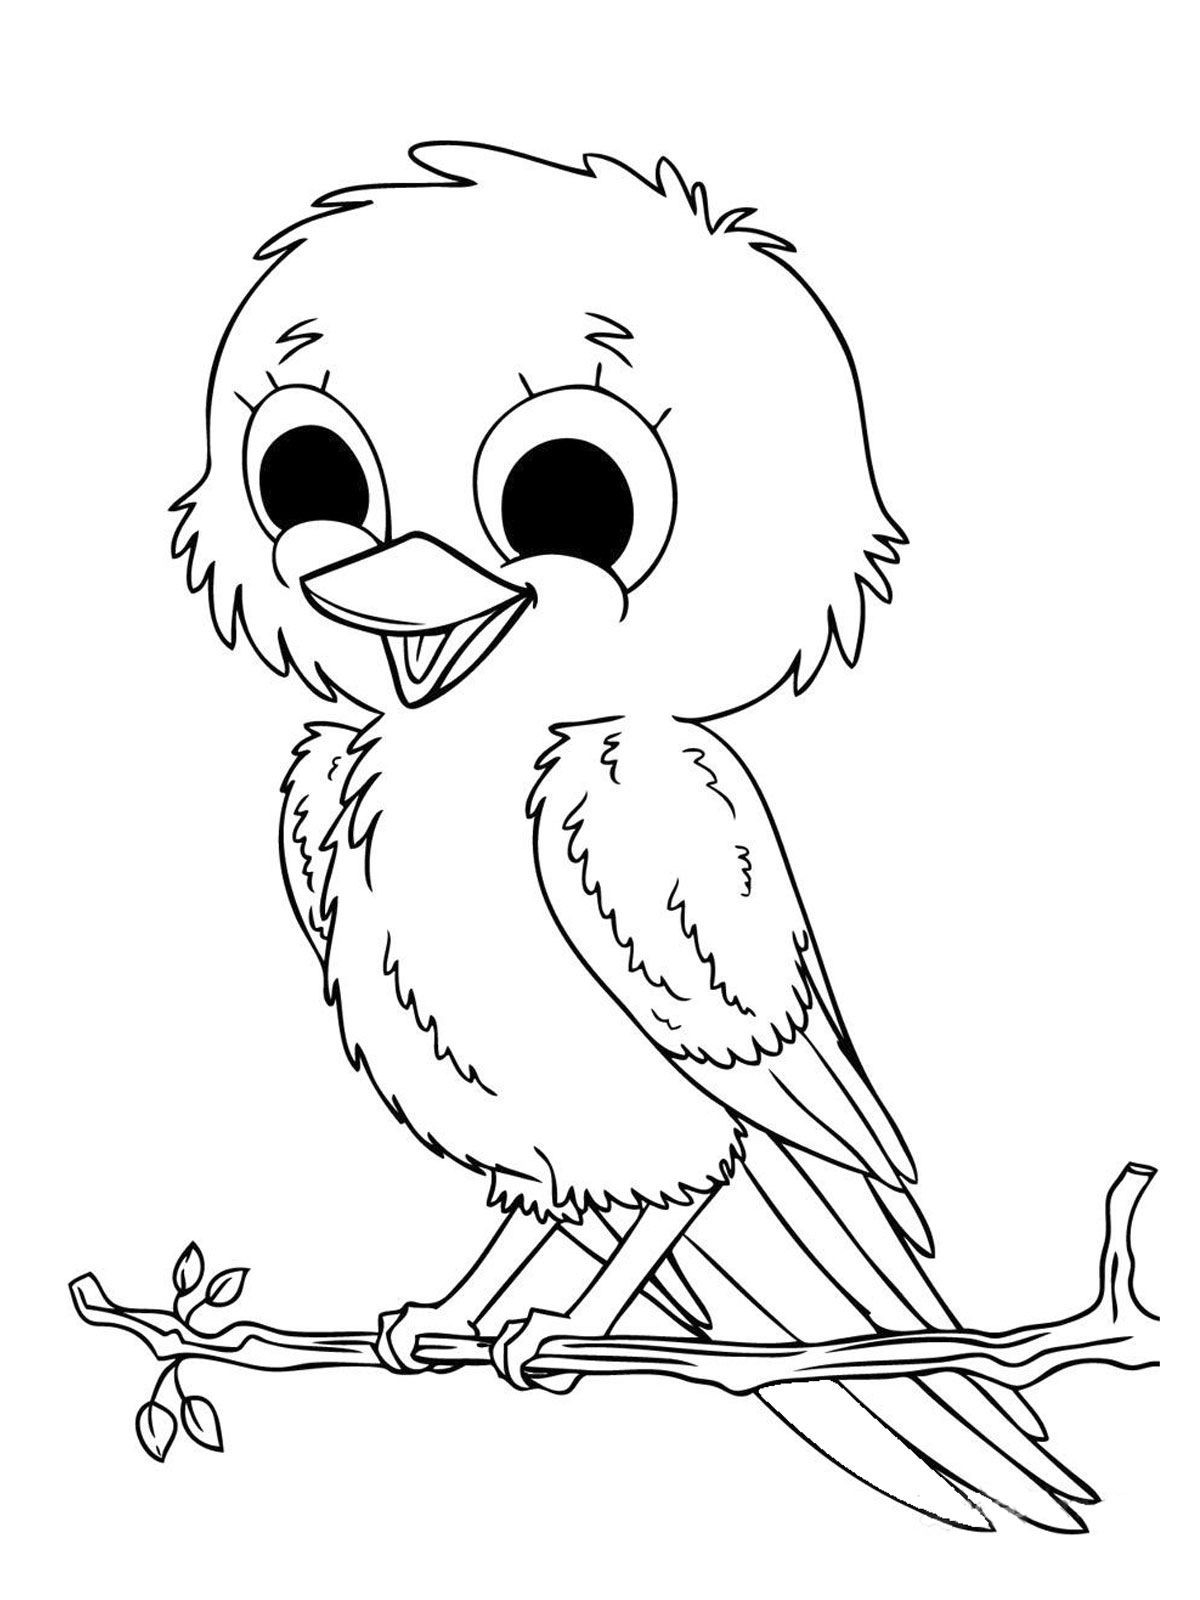 Baby Animals Coloring Book Inspirationa Free Coloring Pages - Free Printable Pictures Of Baby Animals